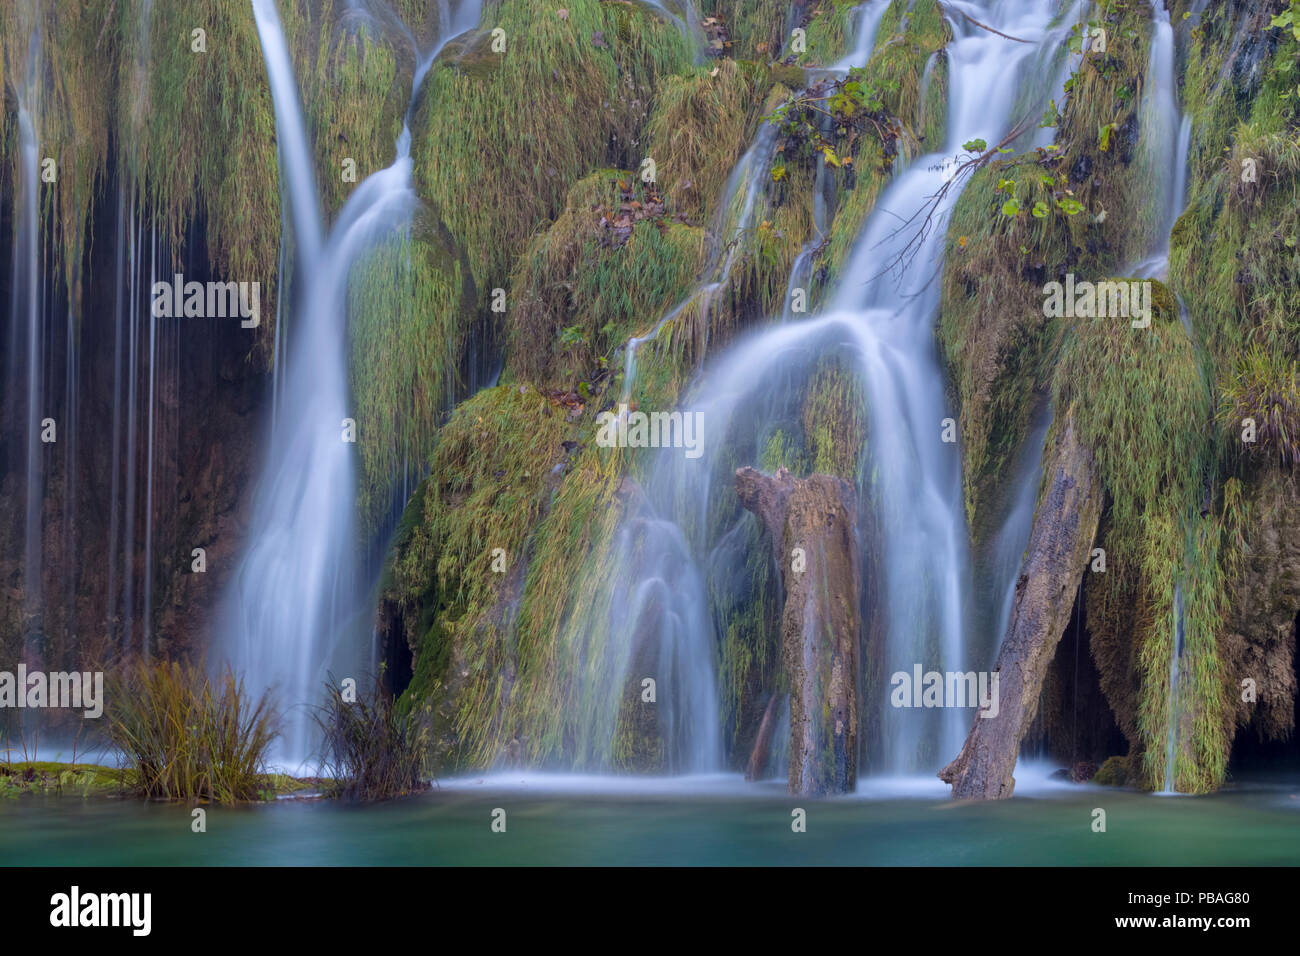 Water cascading over naturally formed tufa dam. Tufa is a kind of limestone, formed from the precipitation of carbonate minerals which builds up around mosses and water plants to form a solid limestone structure over time. Plitvice Lakes National Park, Croatia. November. - Stock Image